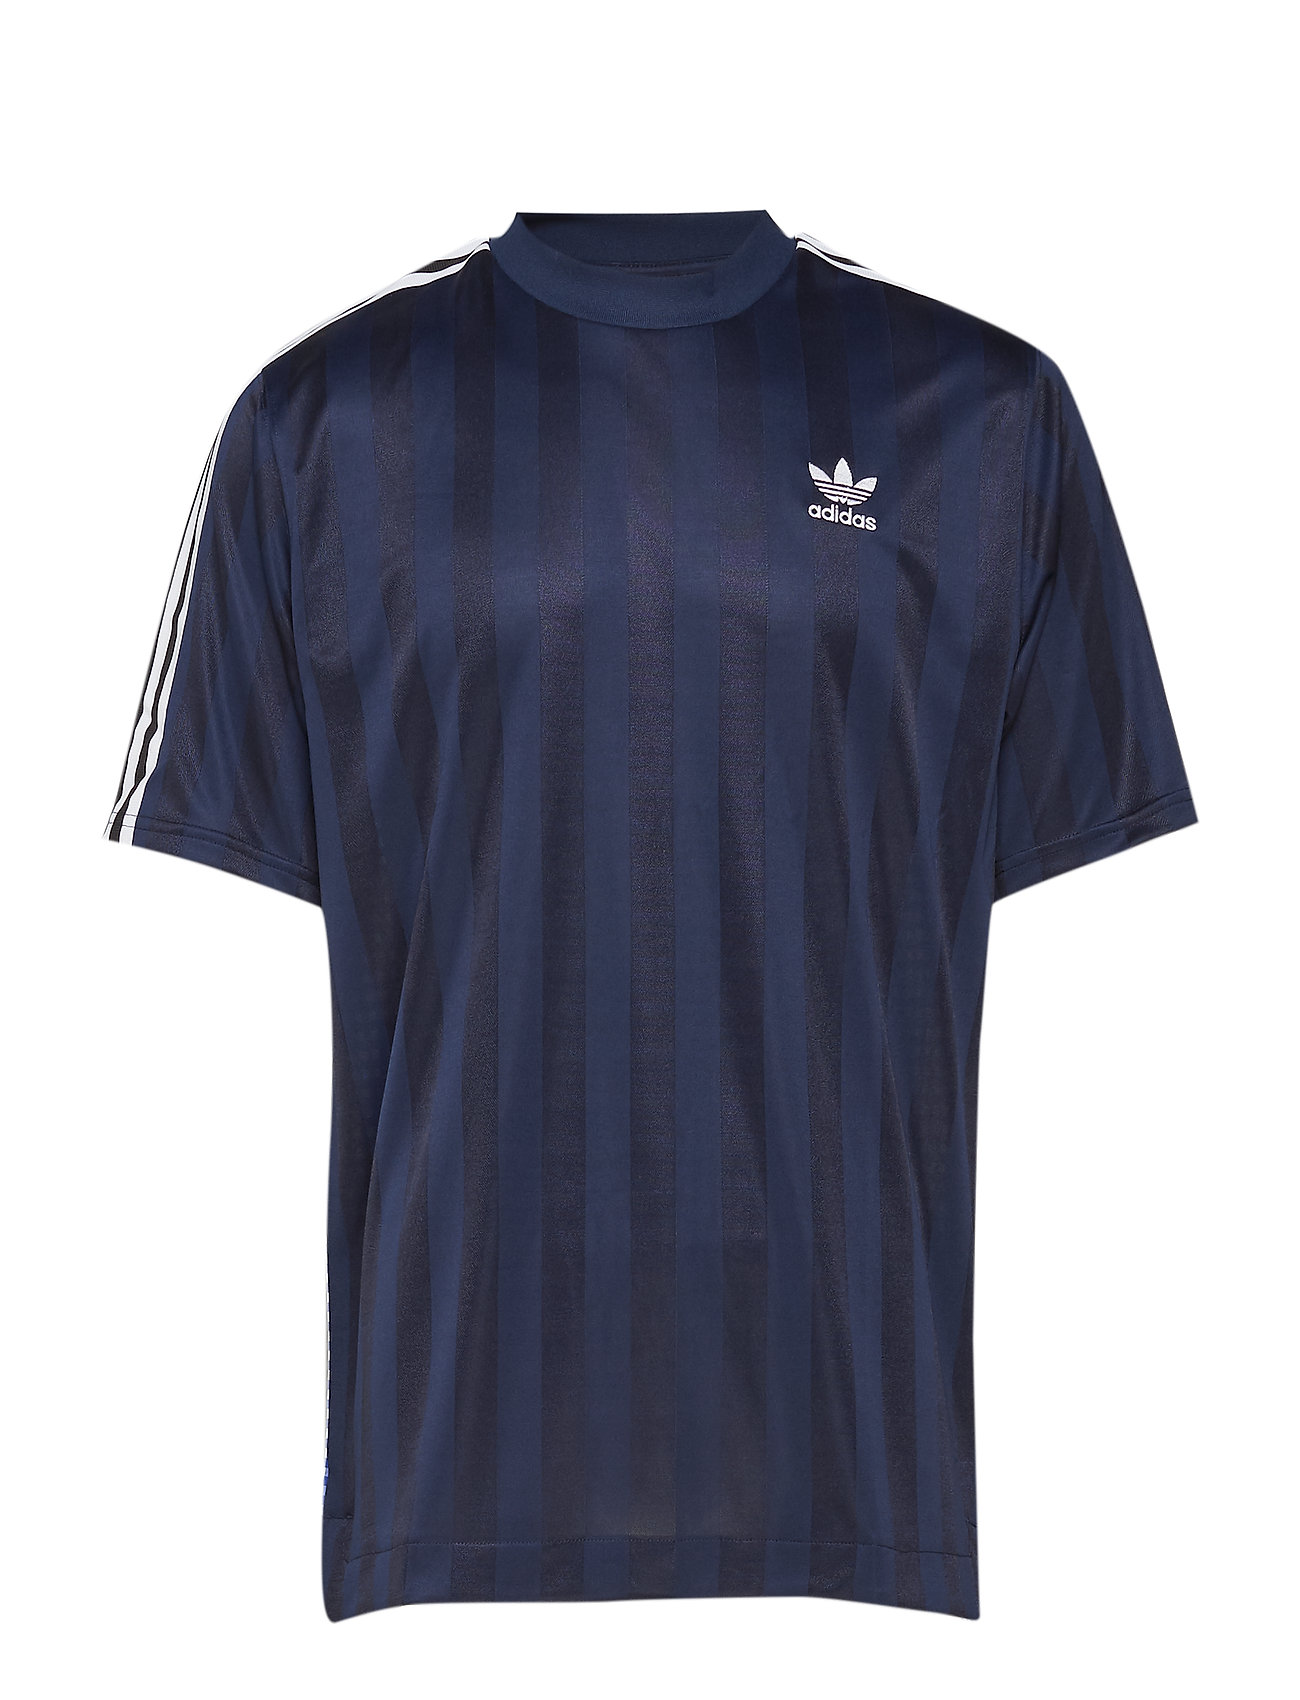 adidas Originals B SIDE JERSEY 1 - CONAVY